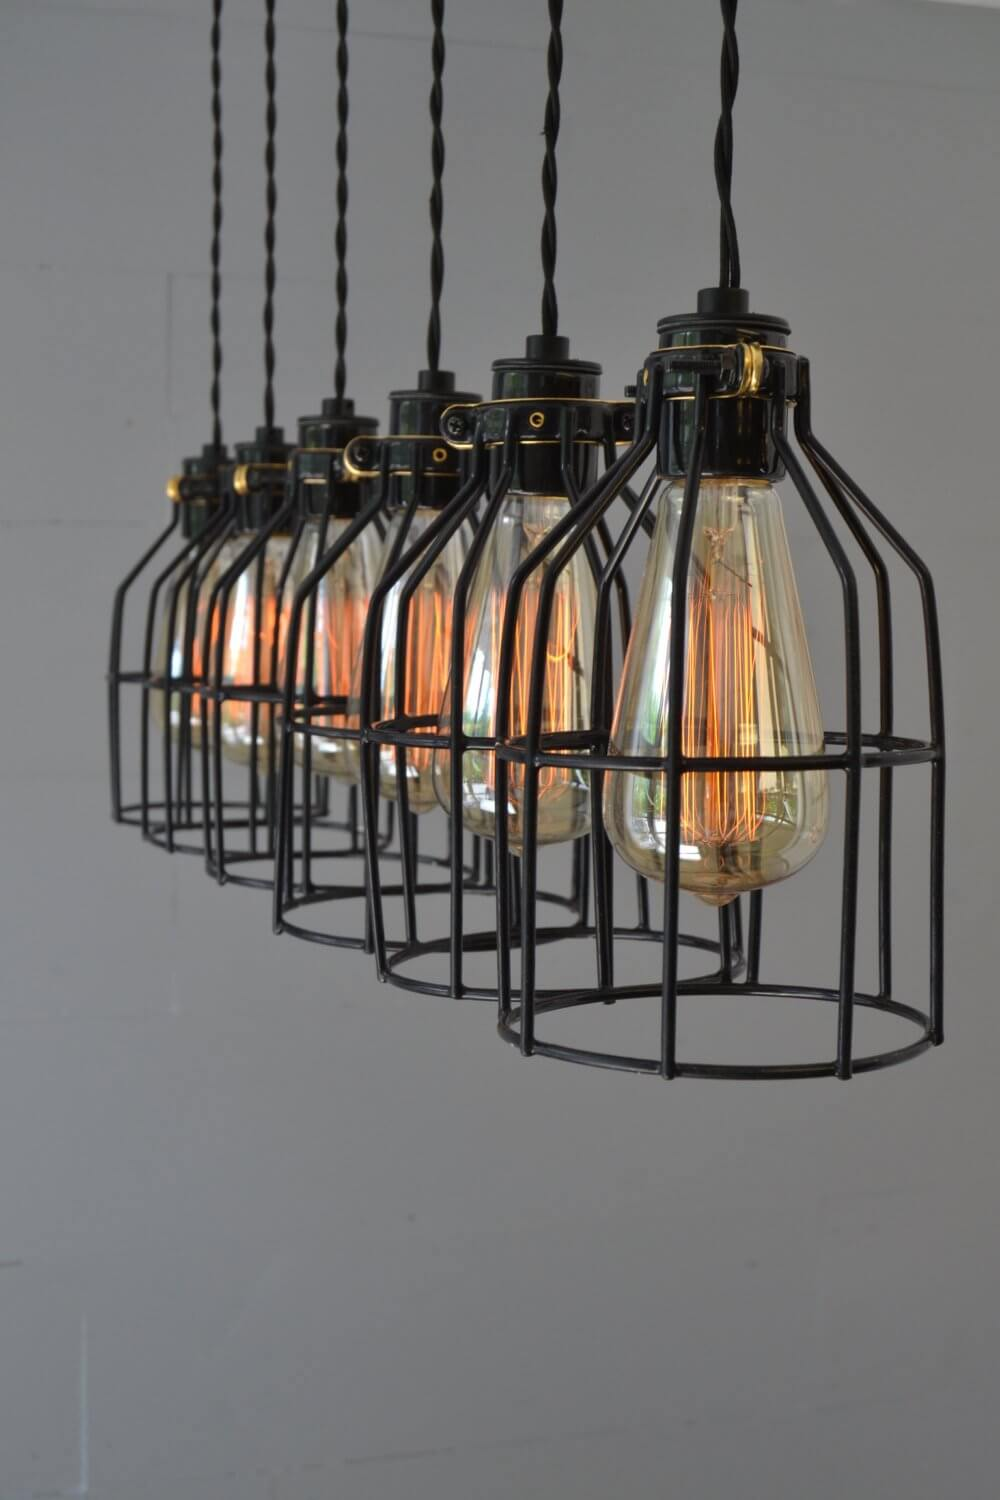 Industrial Black Wireframe Chandelier with Wooden Base